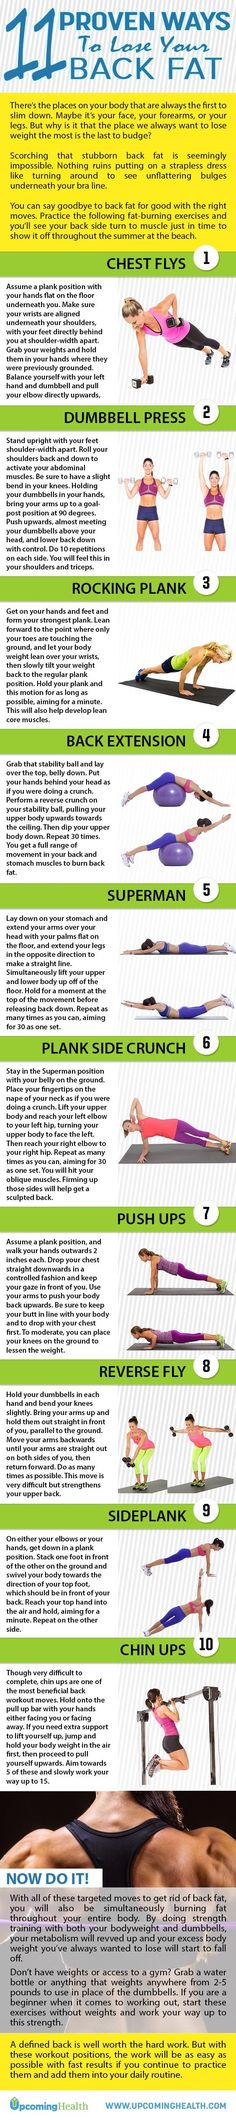 If you have tried to lose back fat then you know how much of a pain it can be. Doing these simple exercises will help you shed off some of that unwanted flab with ease. All of these exercises can be done from the comfort of your own home. All it takes to achieve a tone back is consistent training coupled with a healthy diet. An easy first step to a healthy diet is cutting out soda!